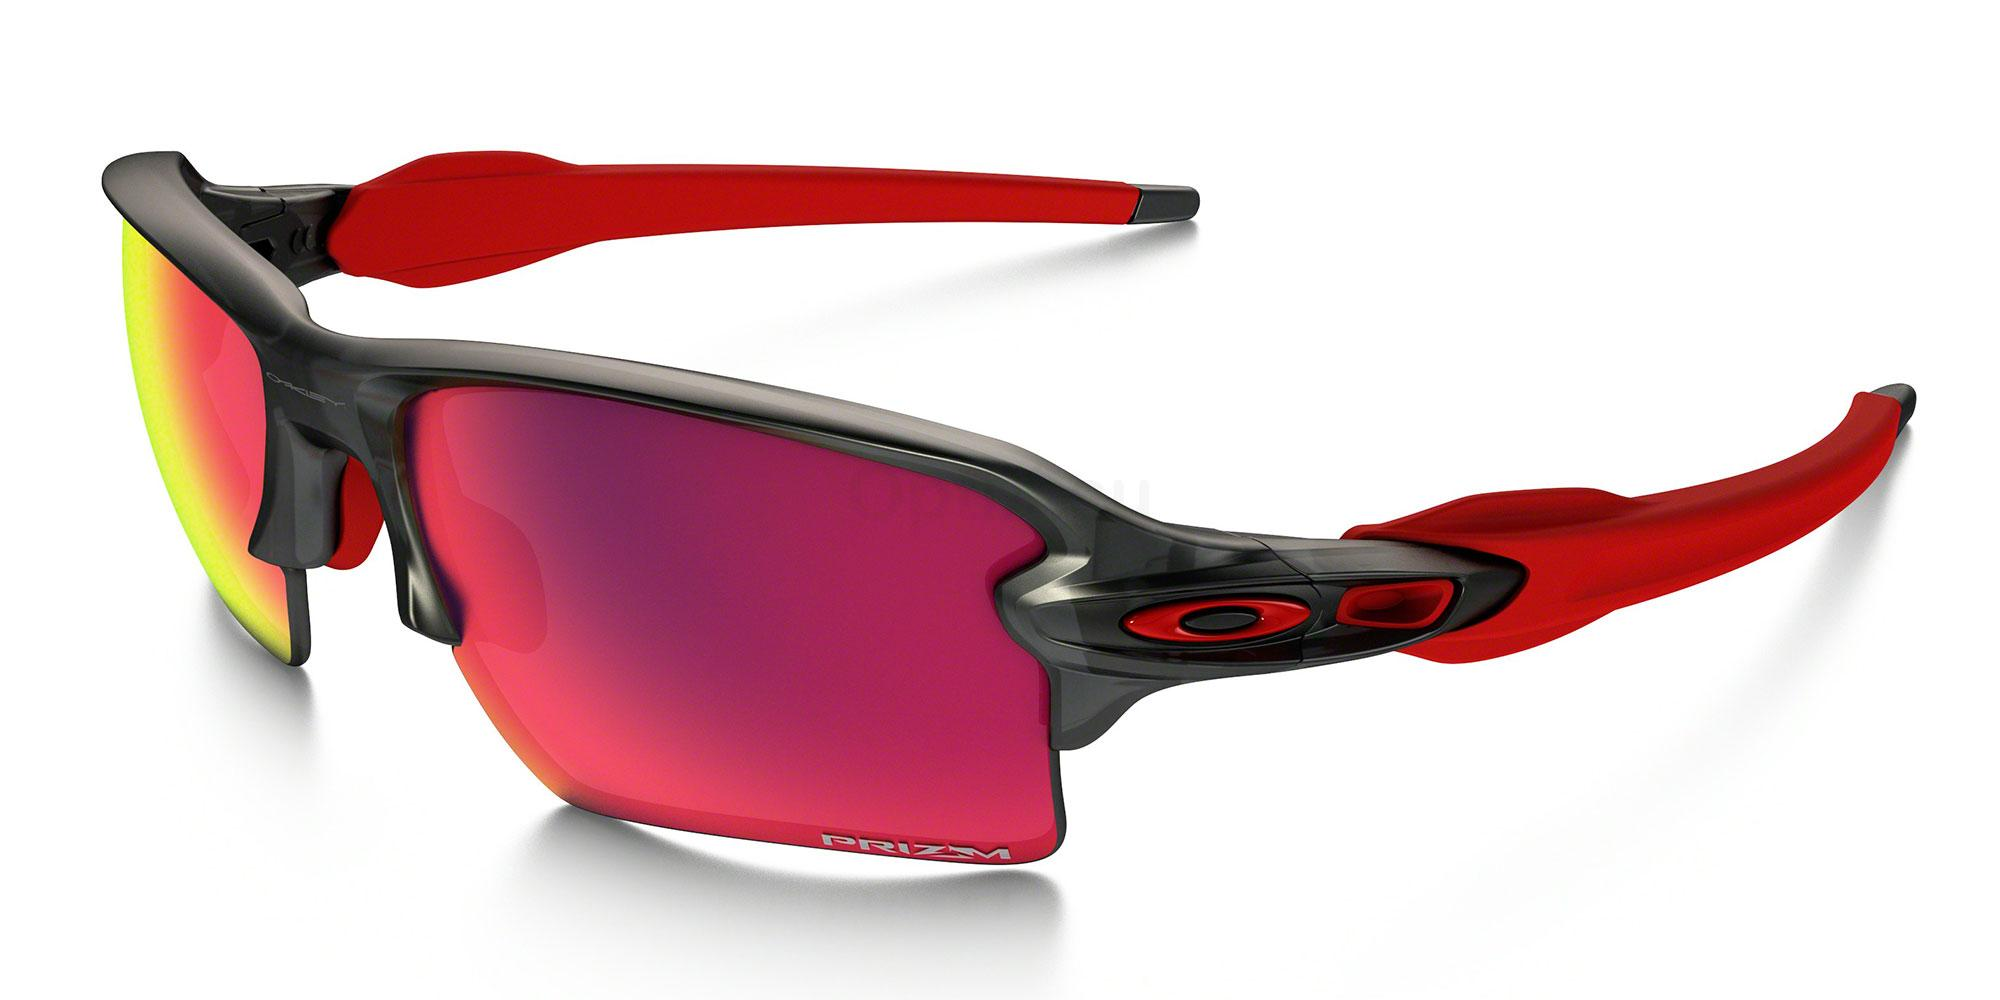 918804 OO9188 PRIZM ROAD FLAK 2.0 XL Sunglasses, Oakley